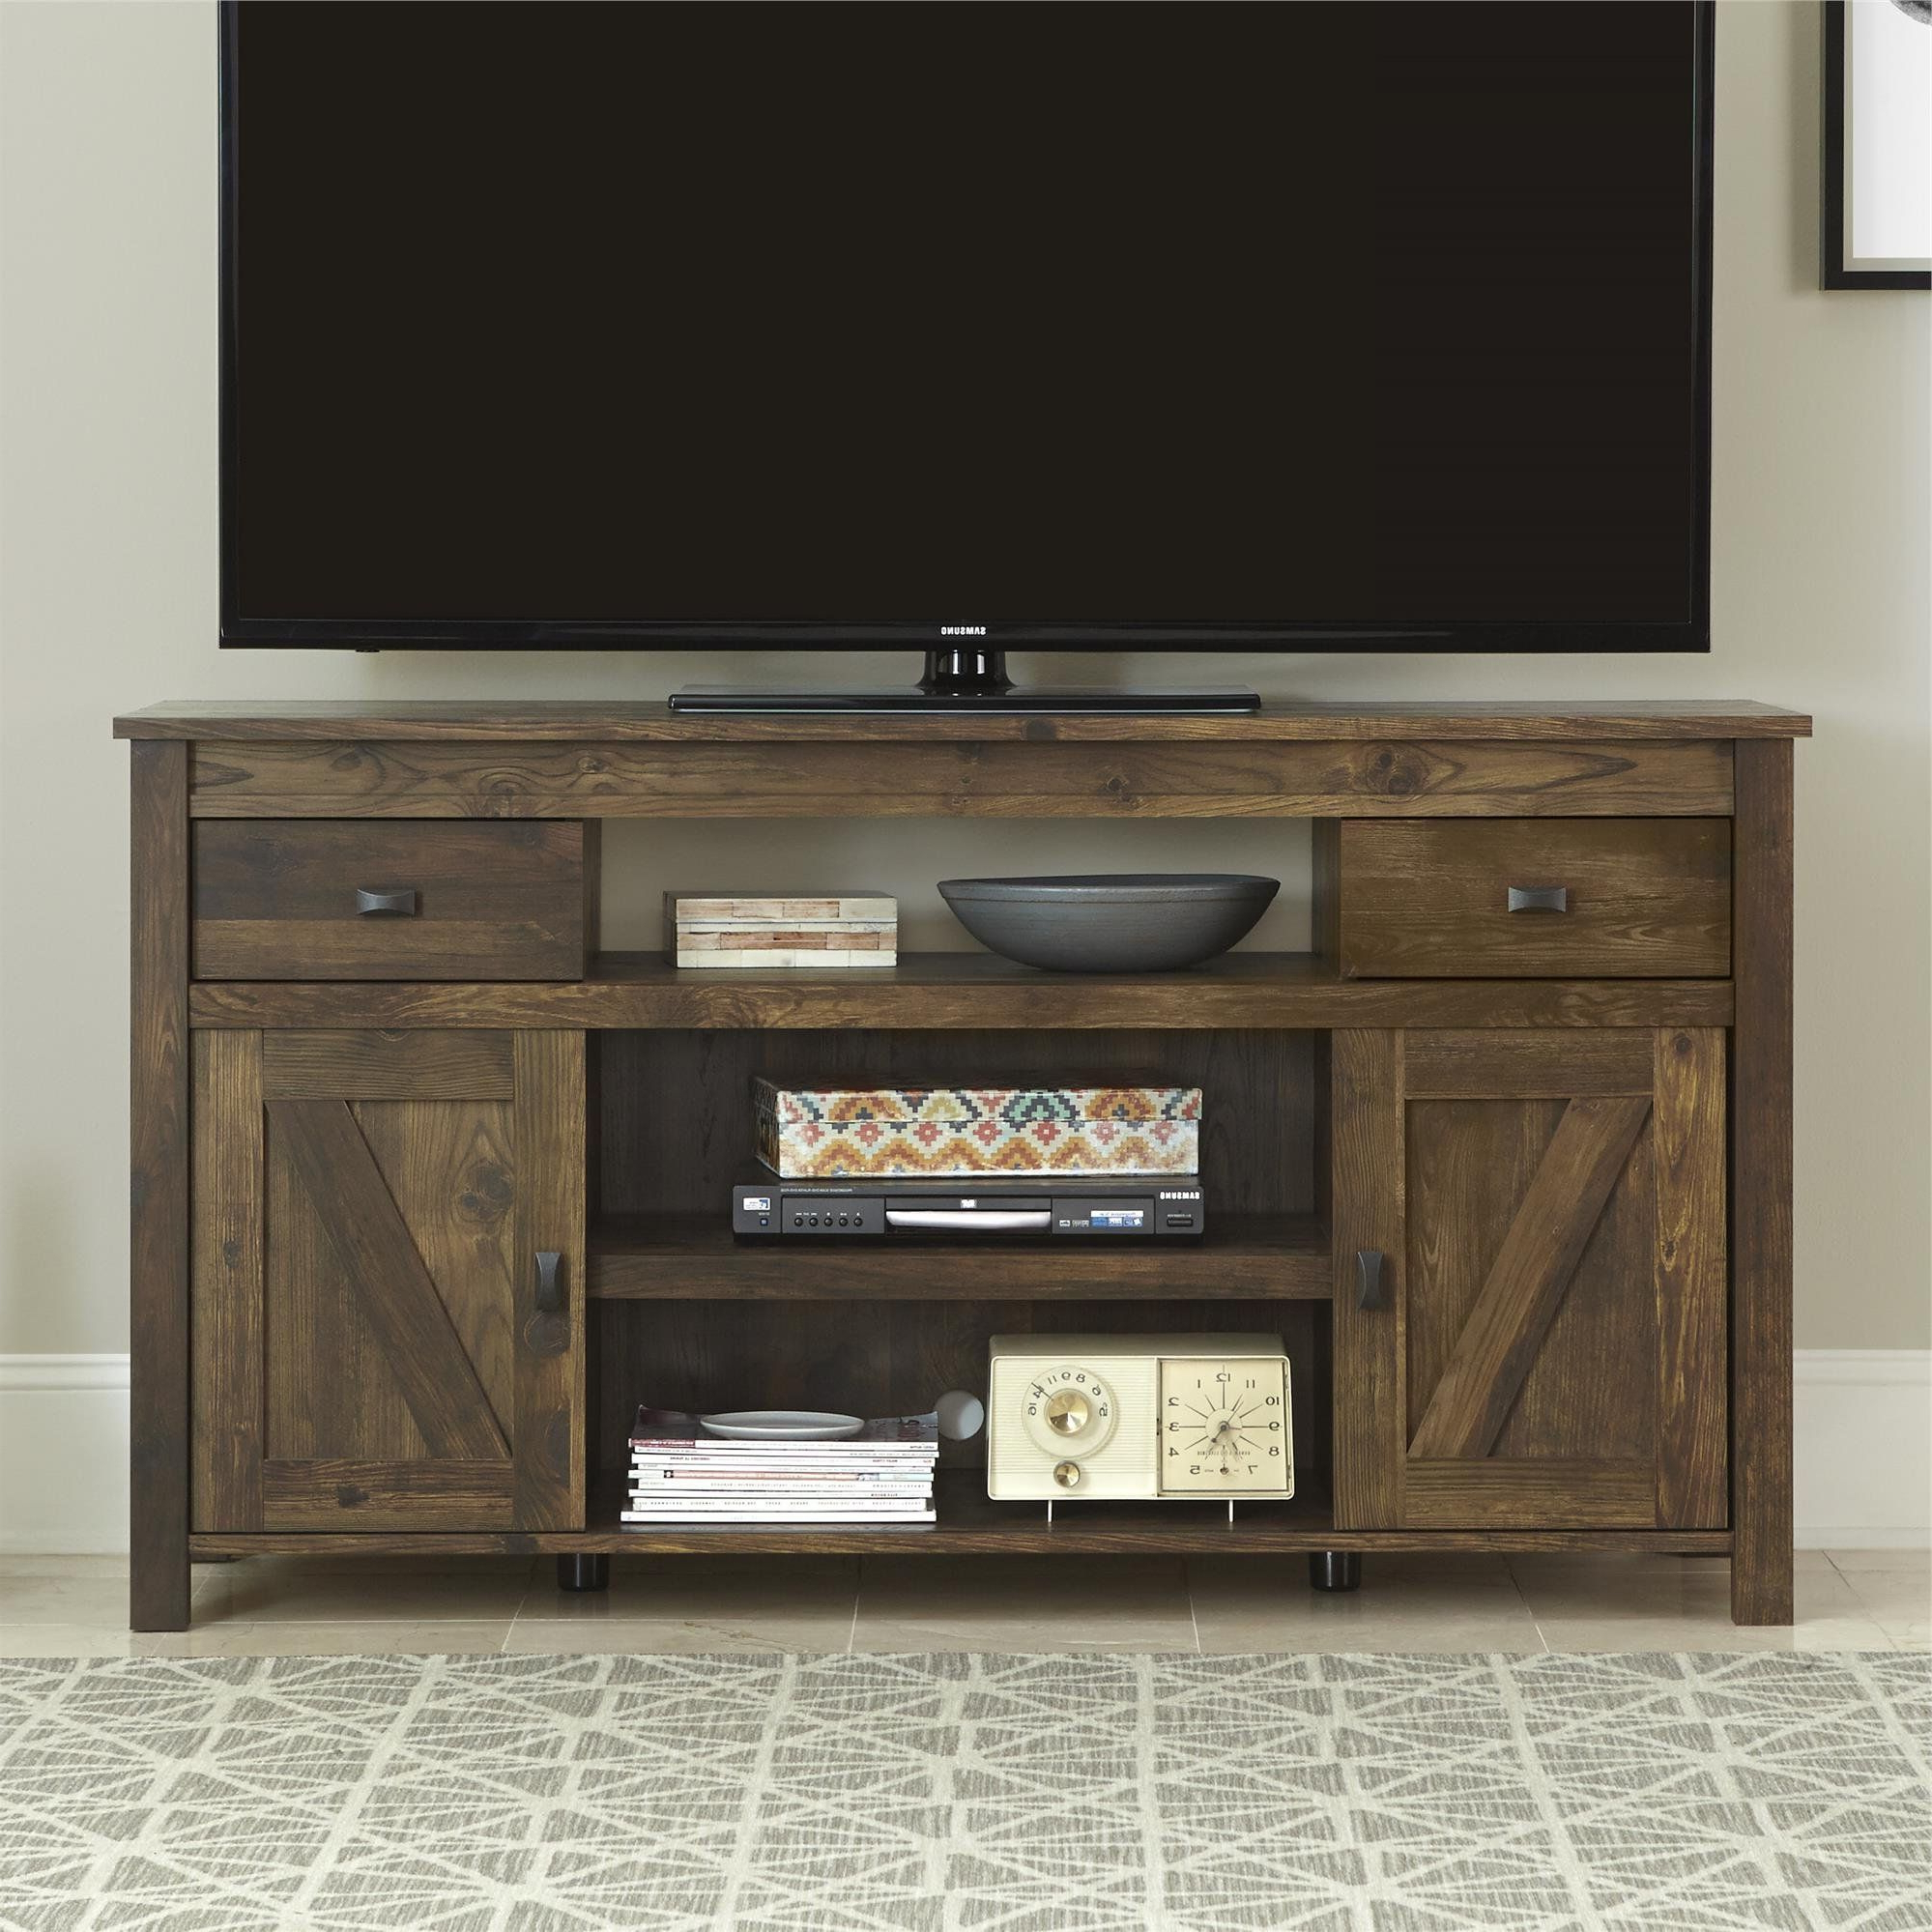 Best And Newest White Rustic Tv Stands Pertaining To Amazon – Ameriwood Altra Farmington Tv Stand, Century Barn Pine (View 16 of 20)